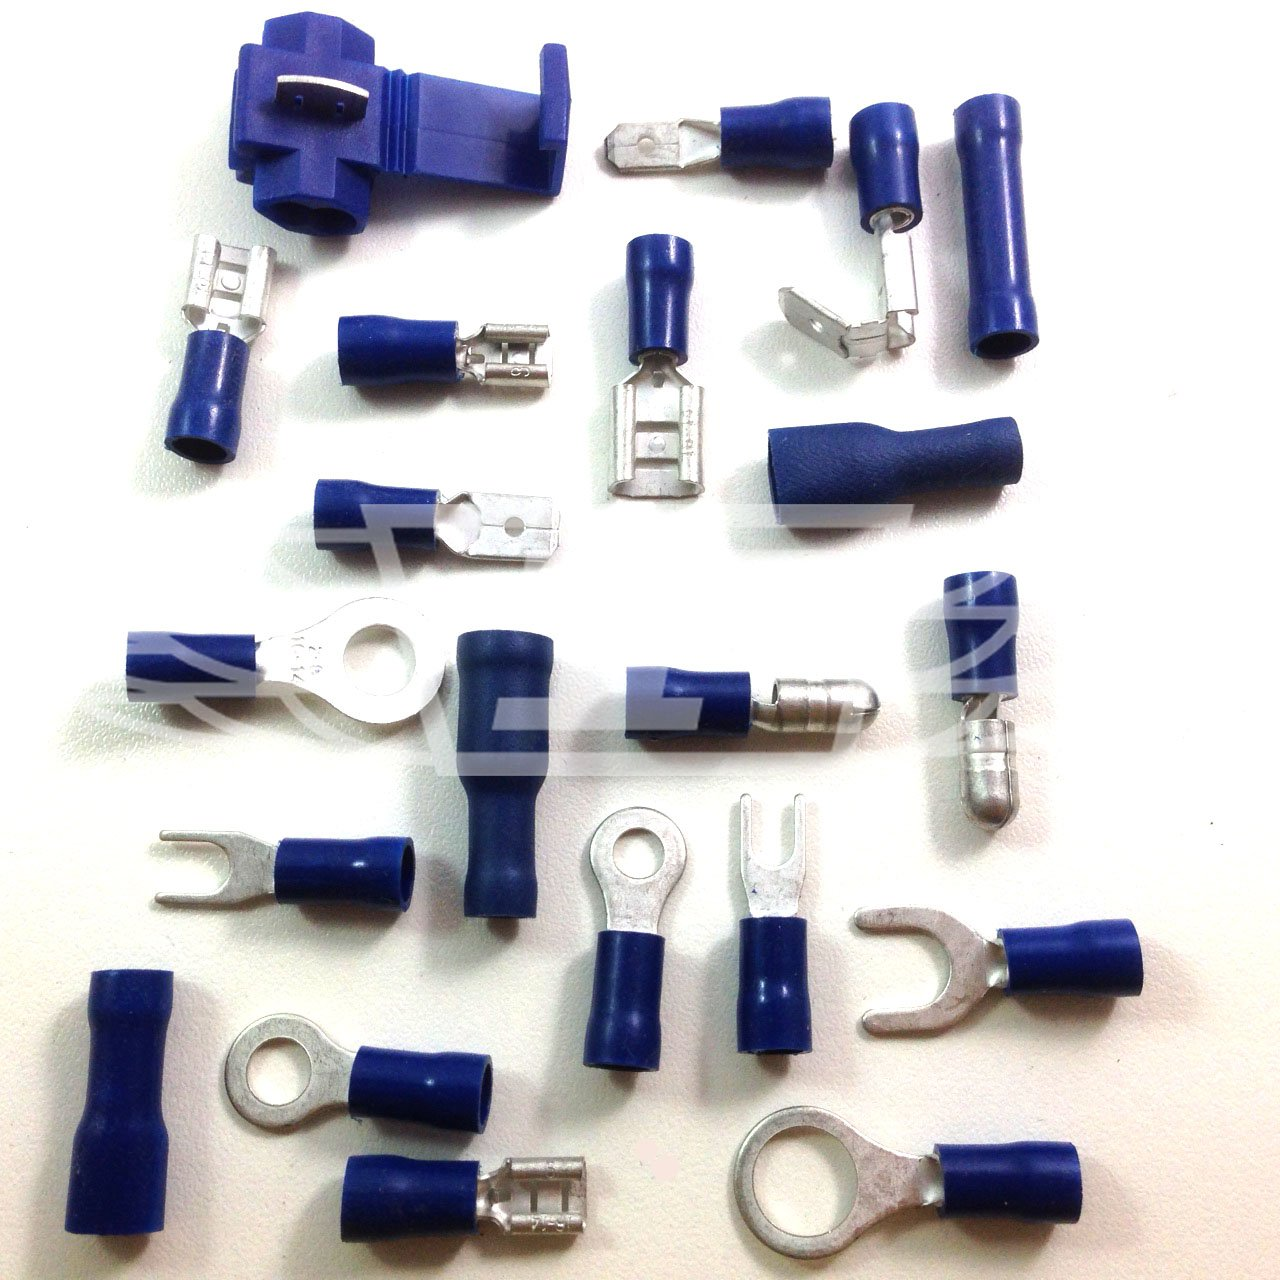 PACK OF 10 x 8.0mm BLUE FEMALE PUSH ON ELECTRICAL CONNECTORS / TERMINALS Falcon Workshop Supplies Ltd